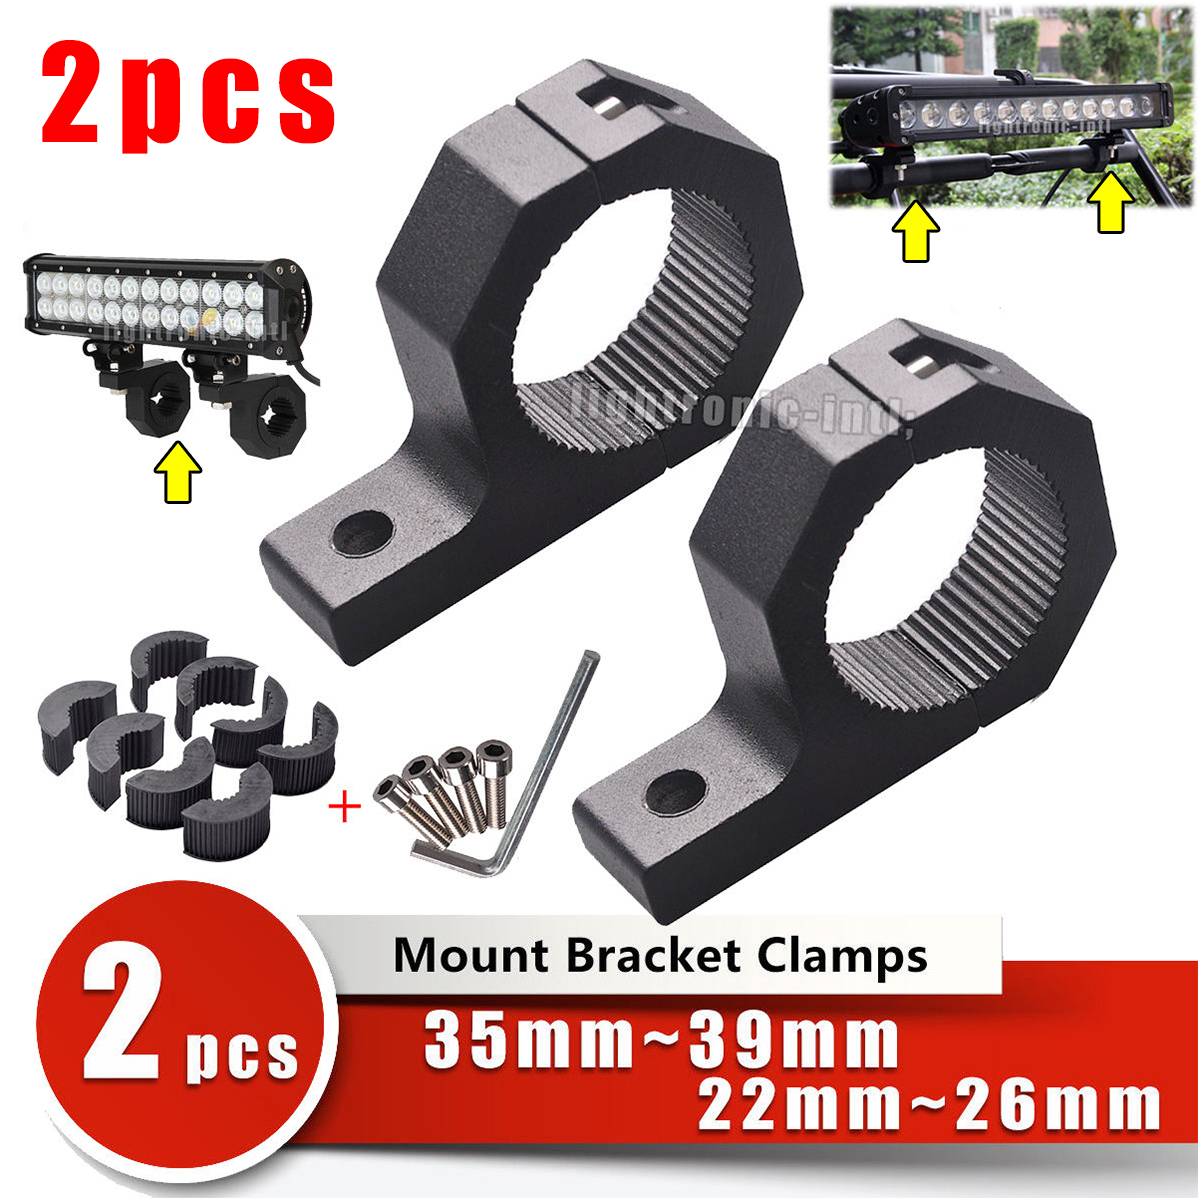 2PCS  Braket Mount Light Clamps Roof Roll Cage Car for SUV Offroad 19mm-25mm